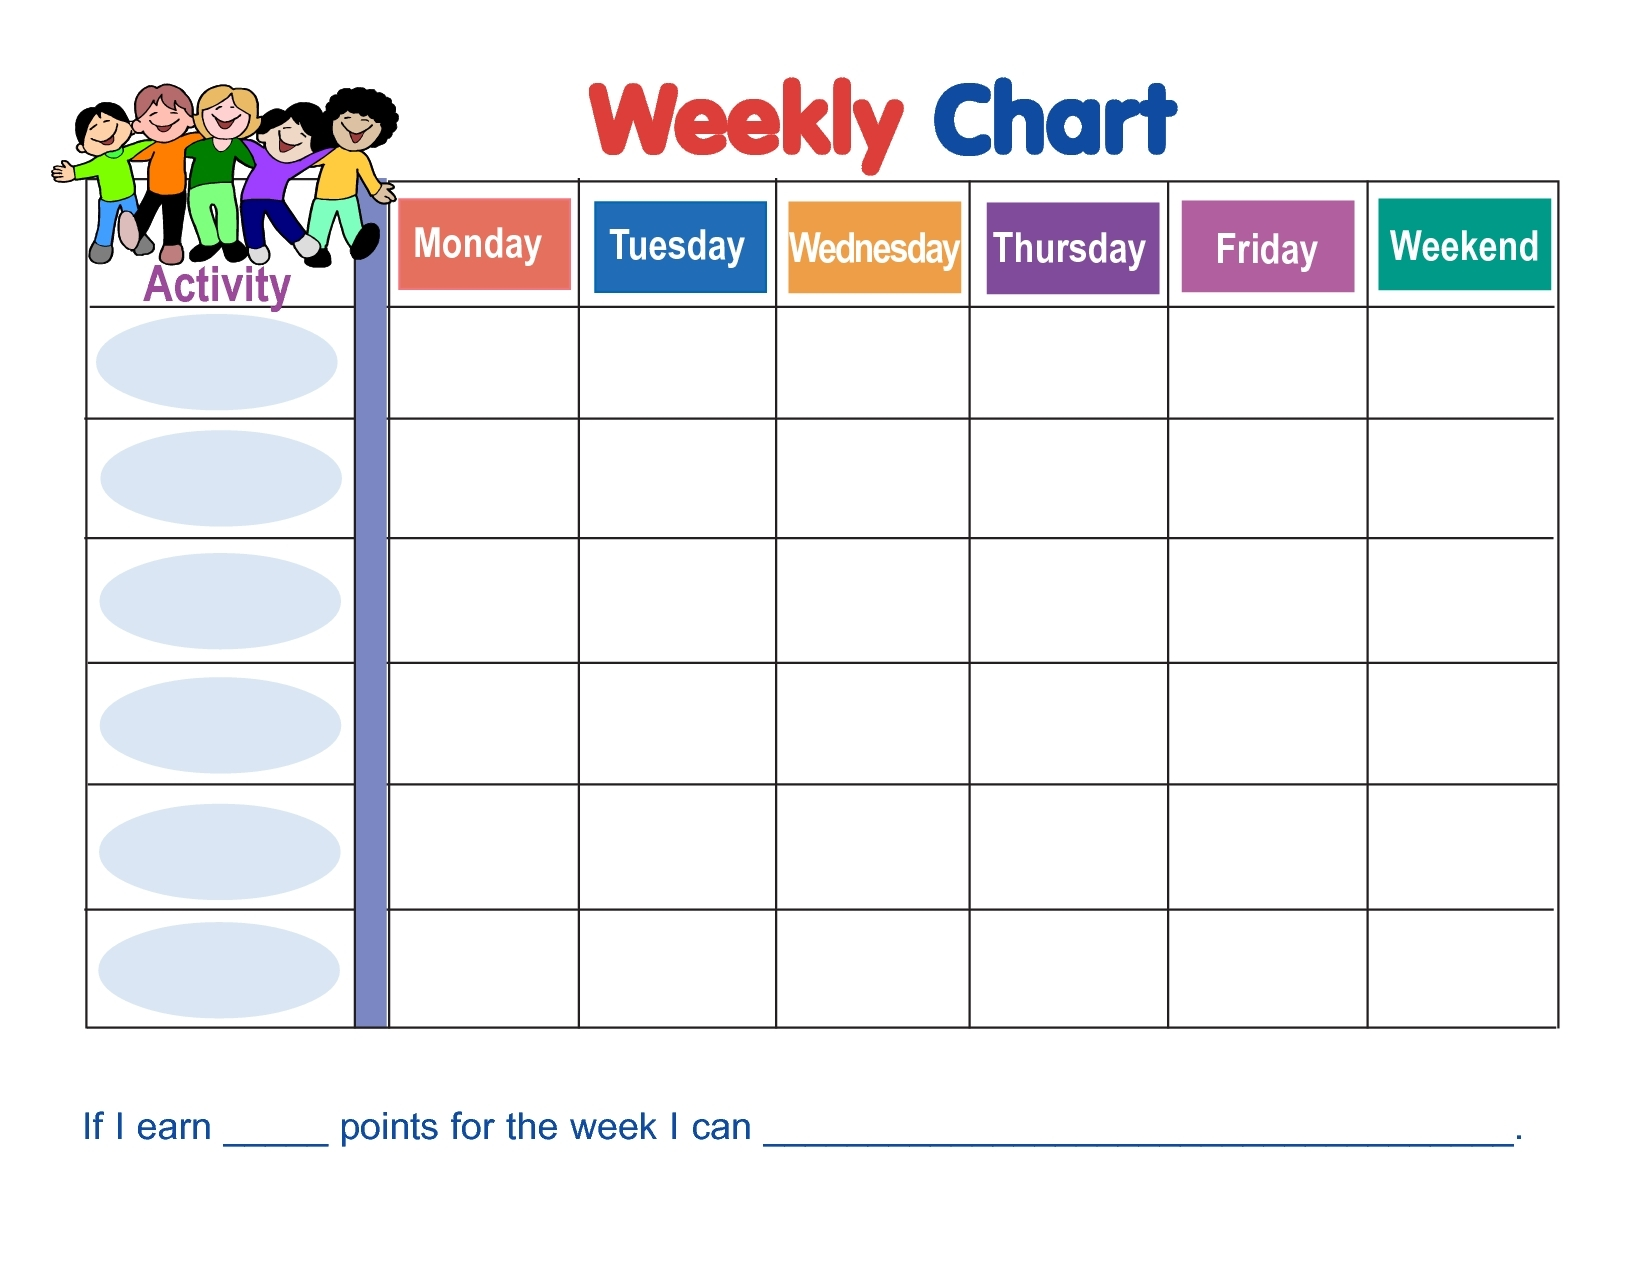 Behavior Weekly Calendar Template Free | Template Calendar Printable with regard to Behavior Weekly Calendar Template Free